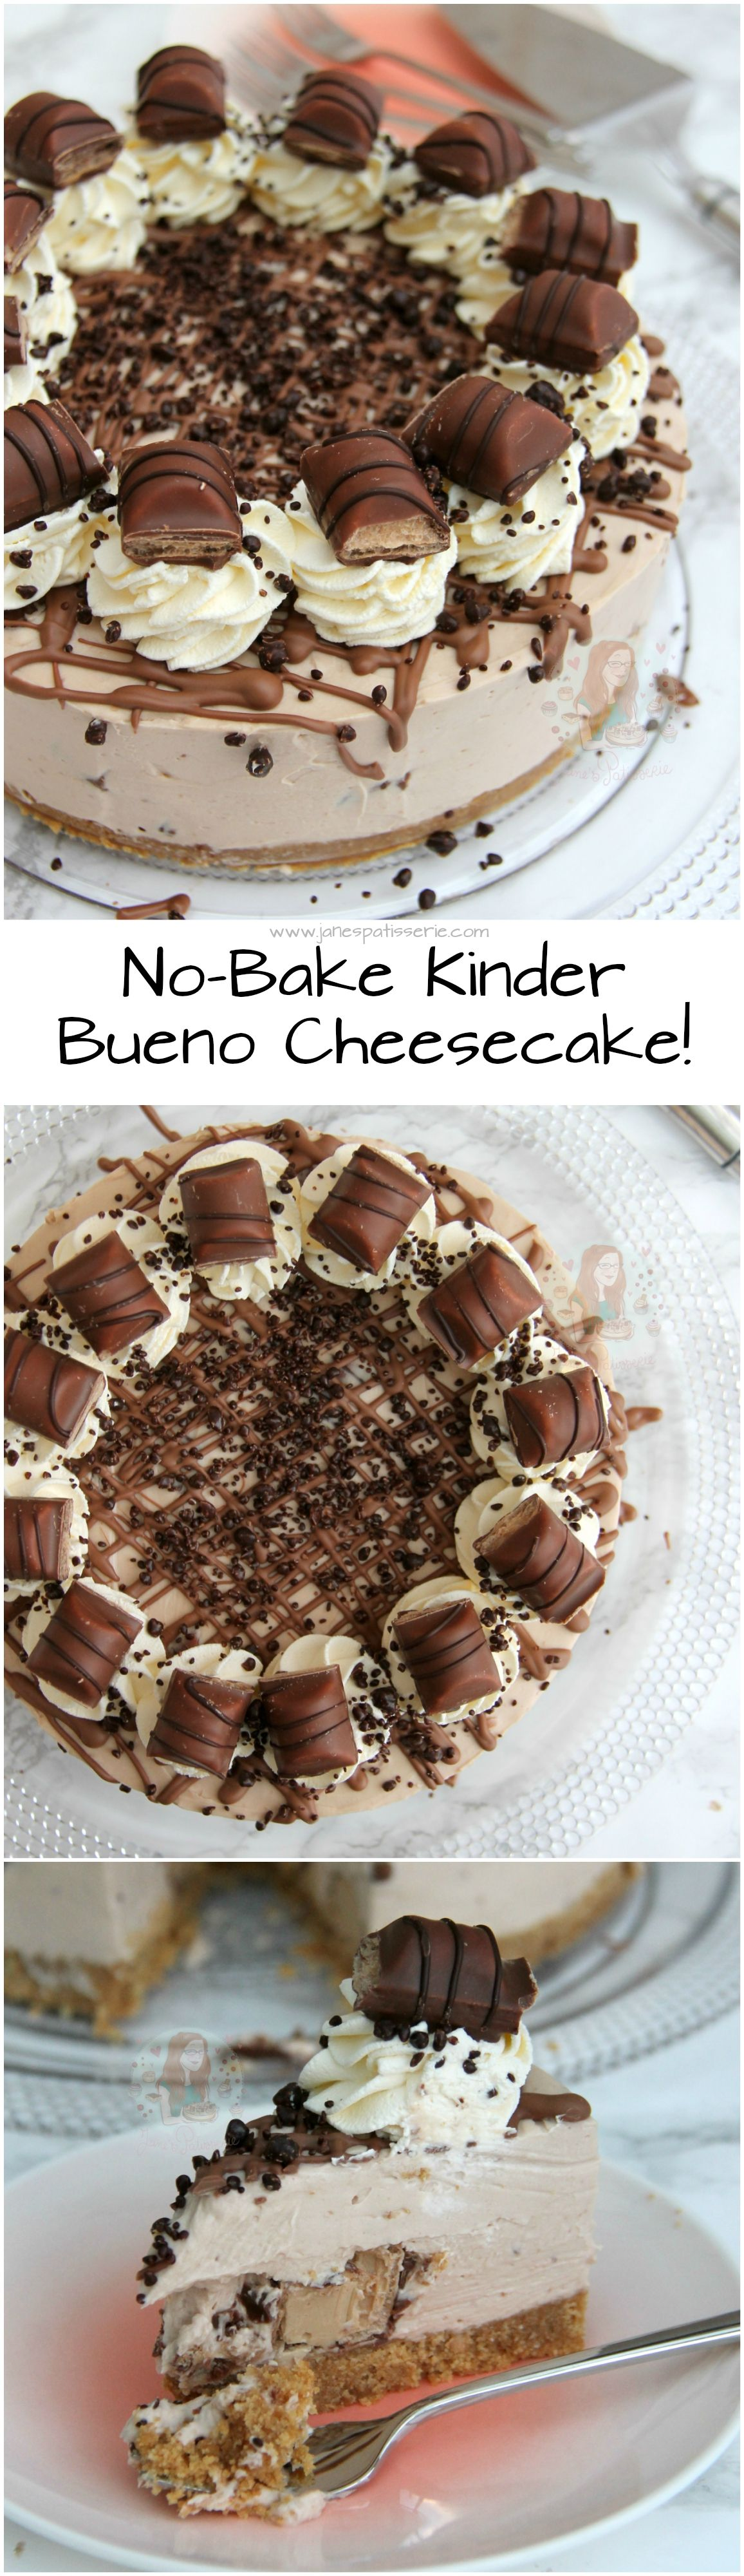 No Bake Kinder Bueno Cheesecake A Buttery Biscuit Base